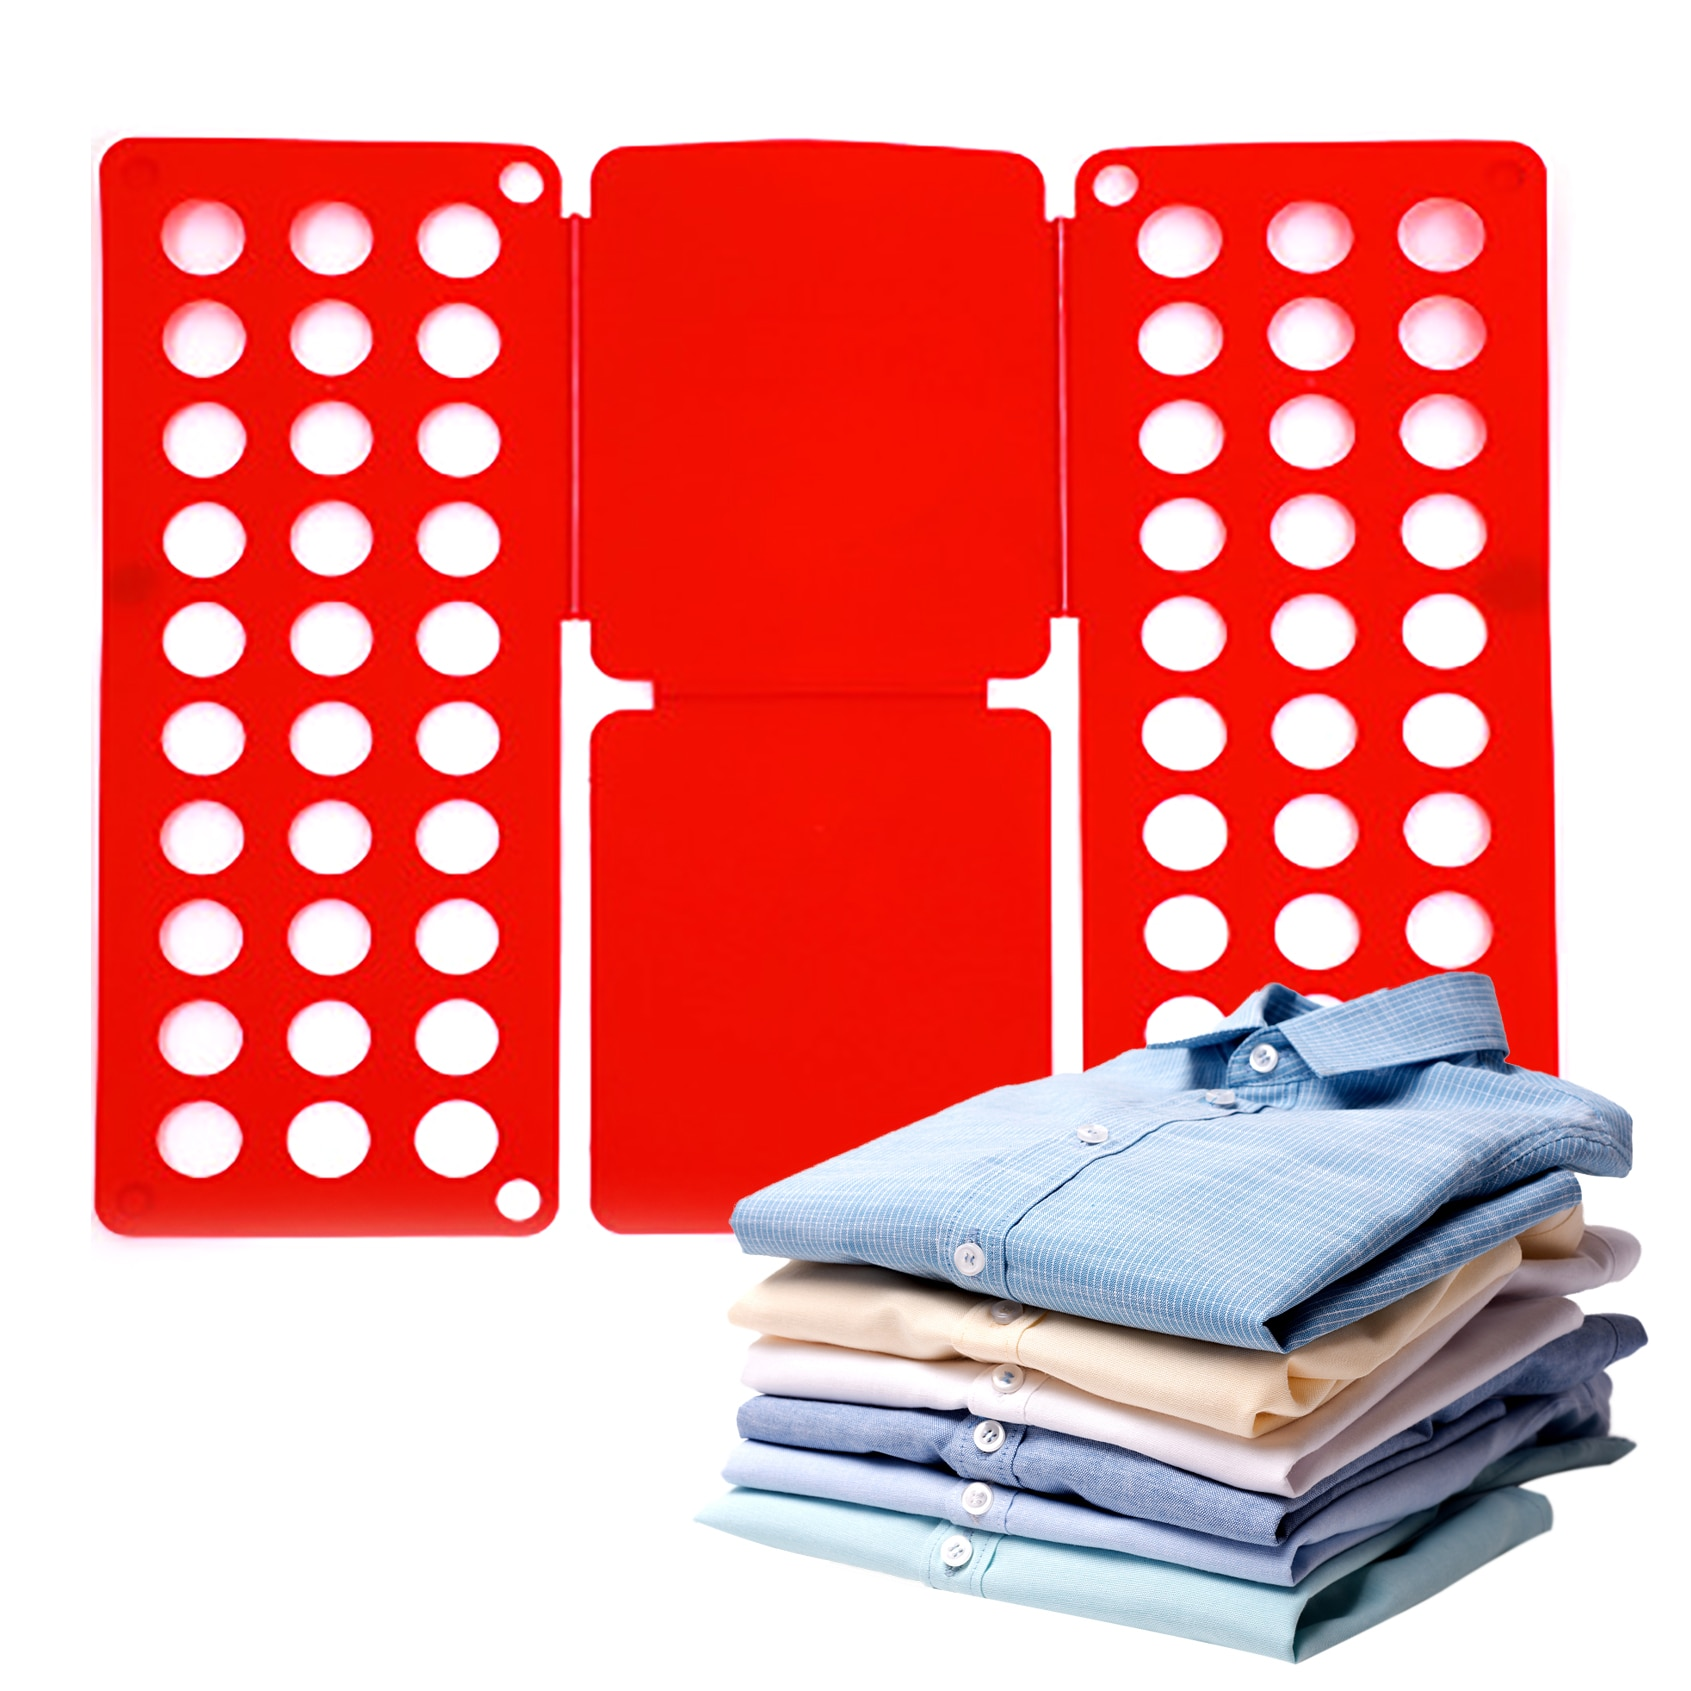 Home decoration Multi-funcitonal Convenient Clothes Folding Board Save Time Fast Speed T-Shirt dress shirts Fold Save Space 1PC clothes folding board fast cloth folder plastic t shirts jumper organizer save time quick convenient stacking laundry fold board